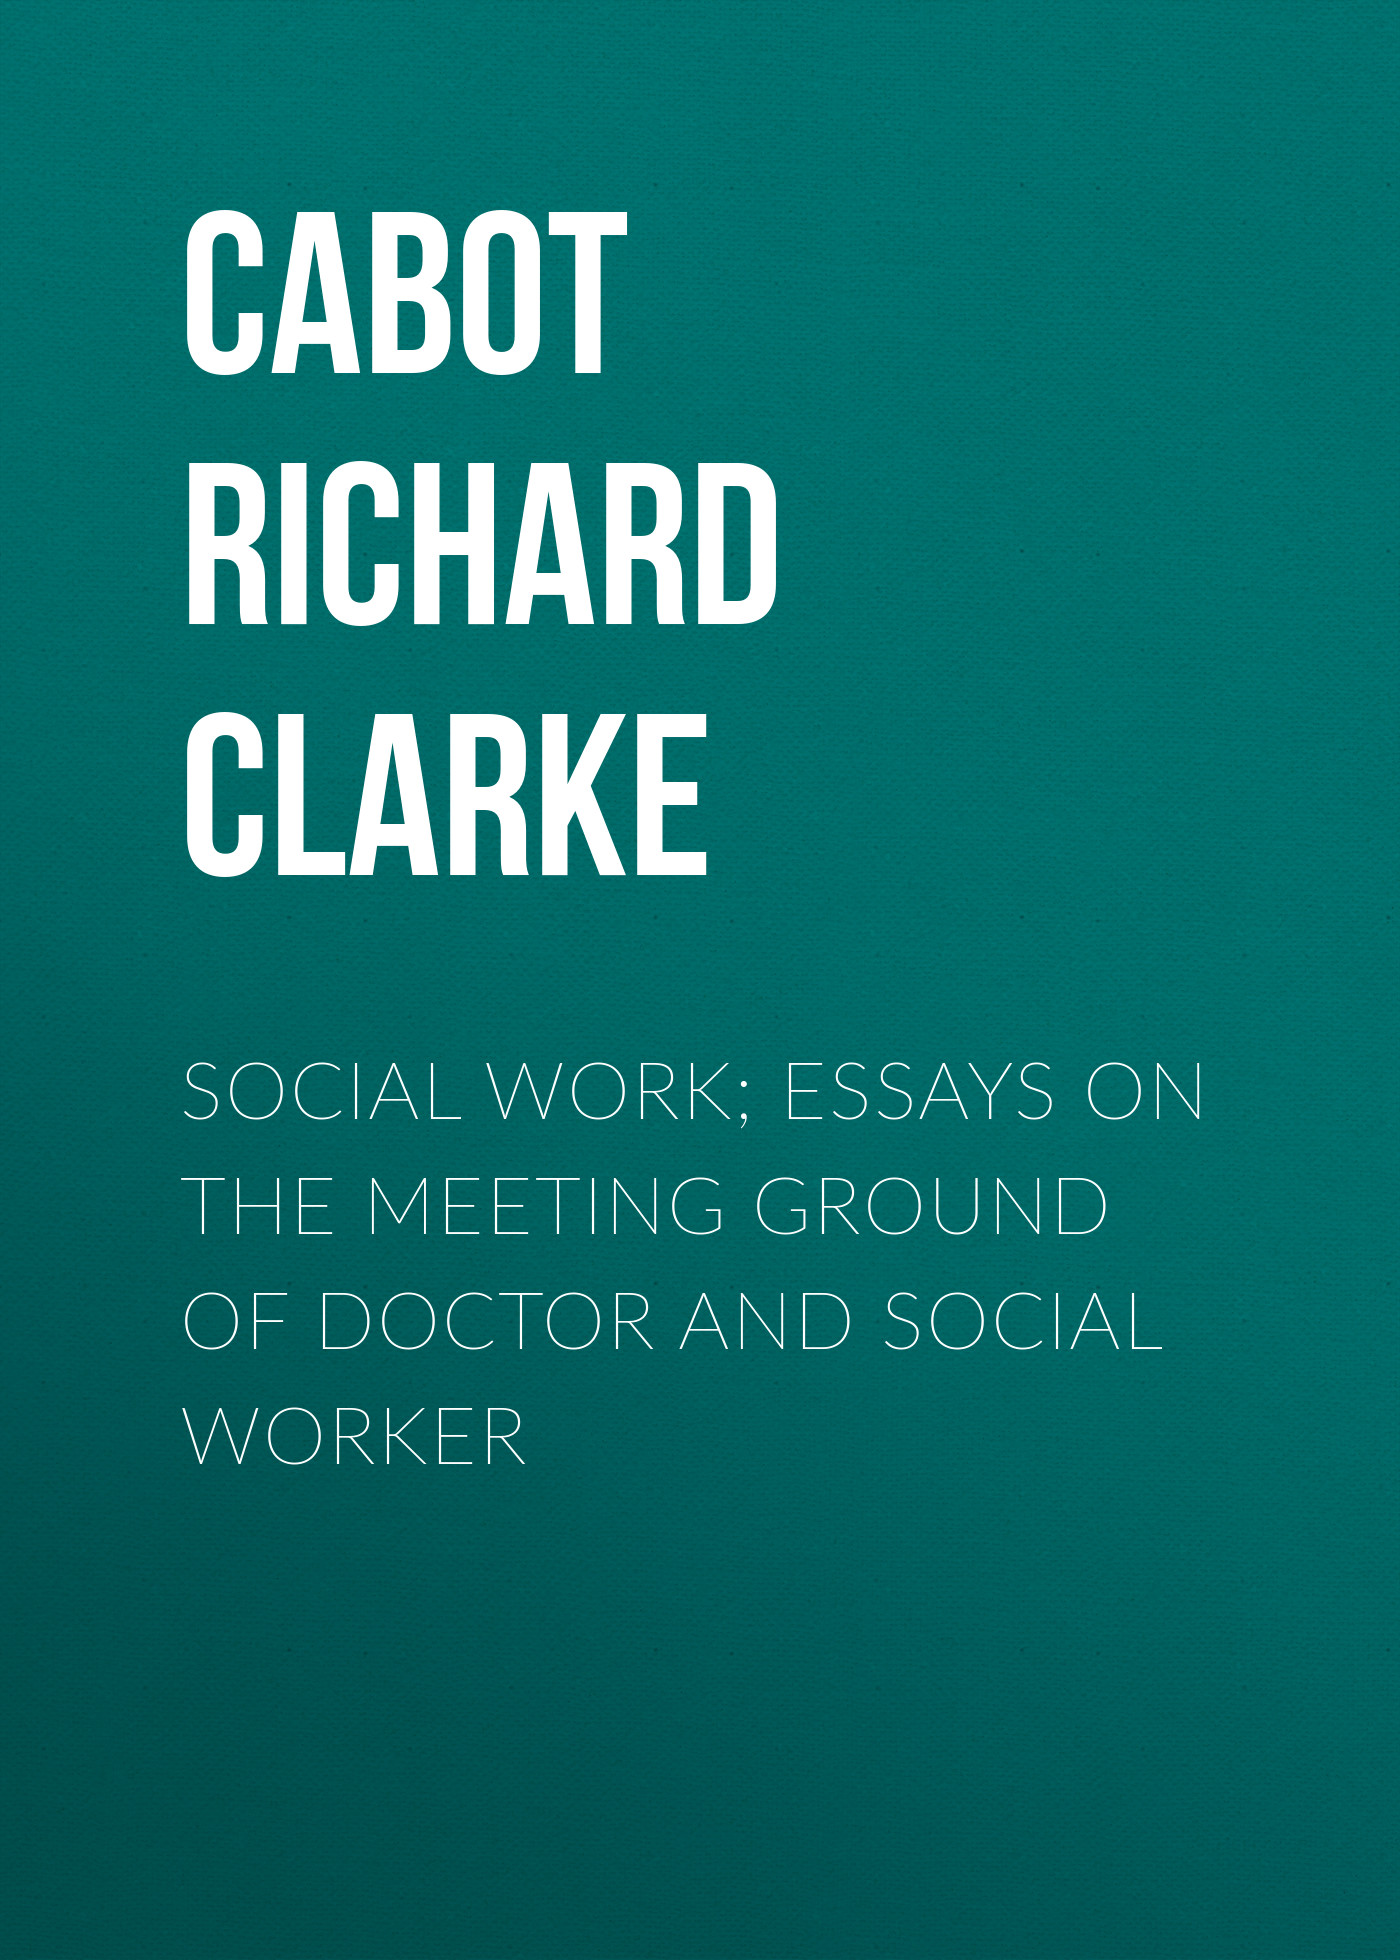 Cabot Richard Clarke Social Work; Essays on the Meeting Ground of Doctor and Social Worker